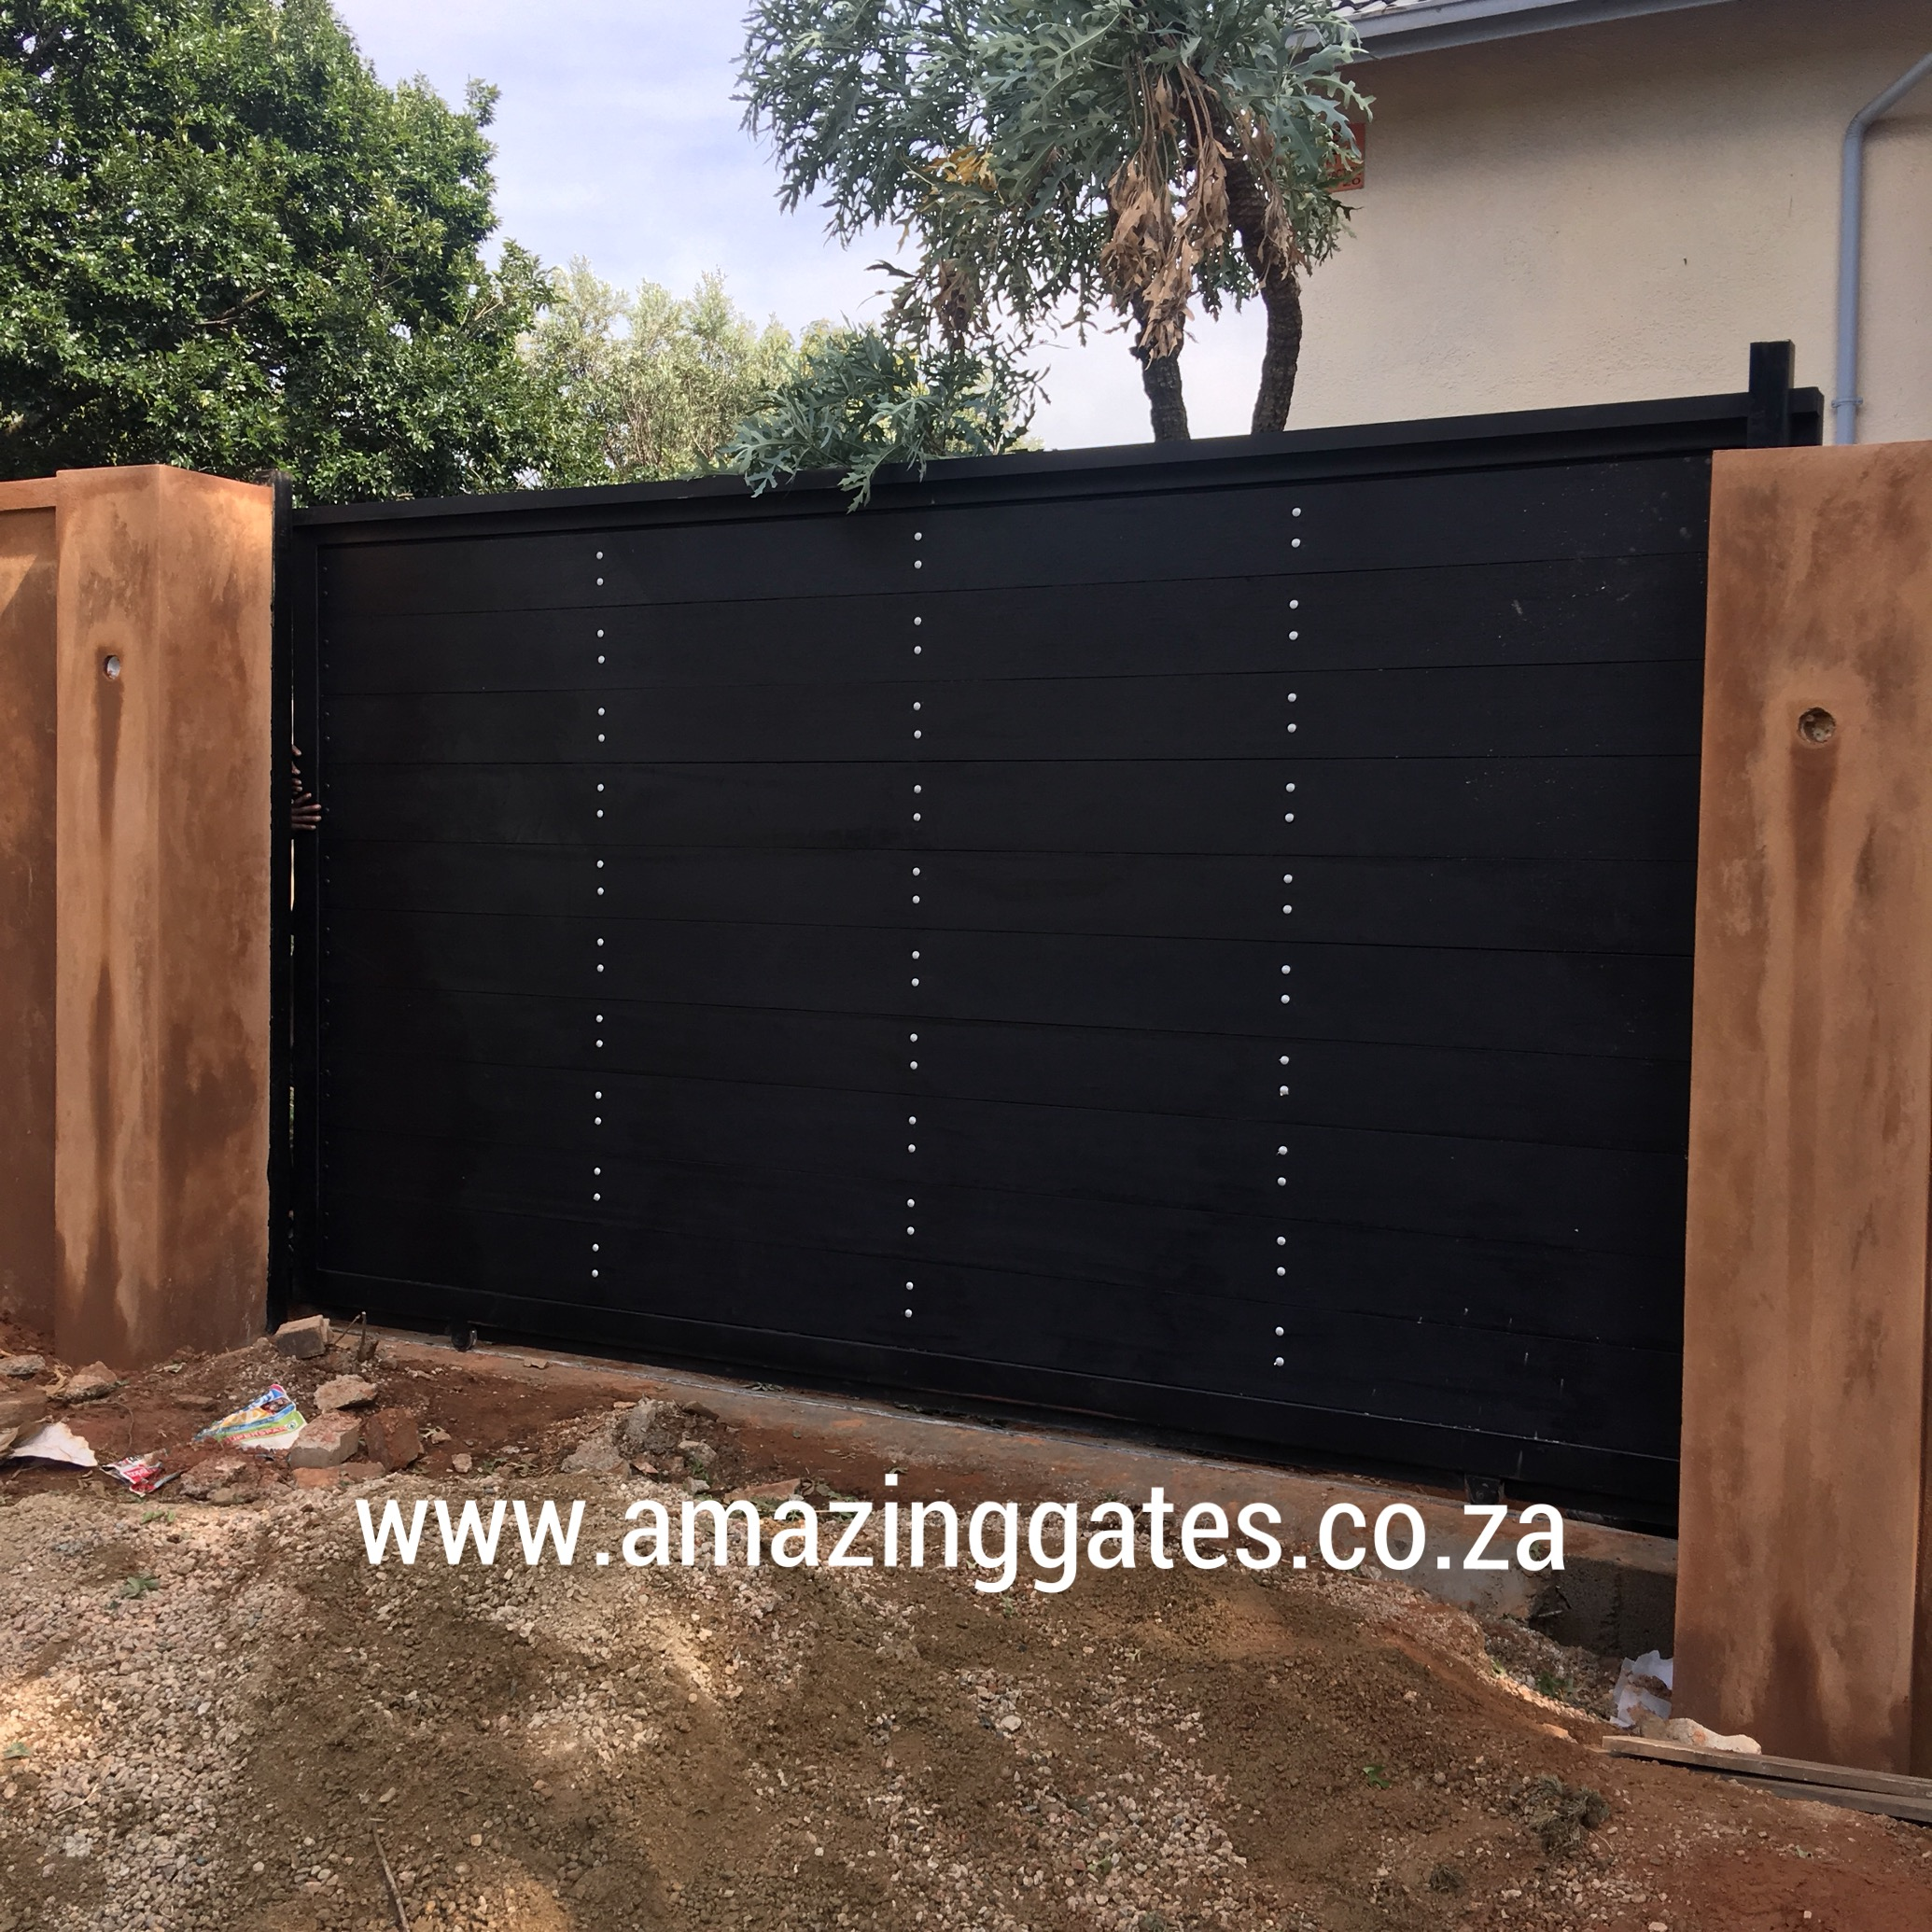 Discover Smart Automatic Driveway Gates In Centurion